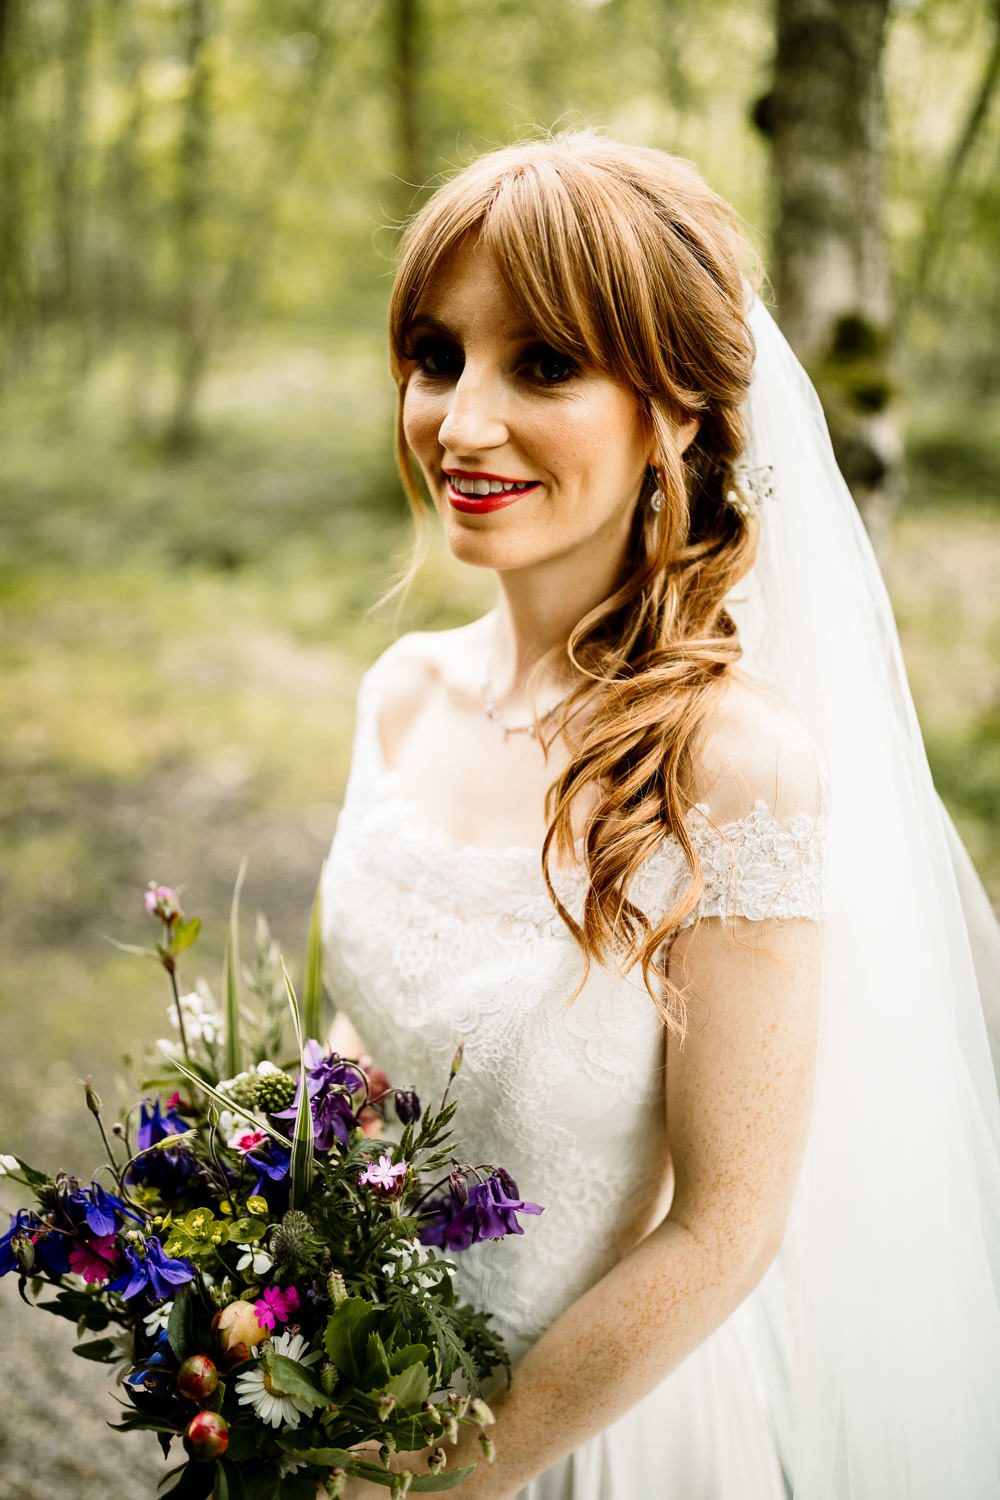 Bride Bridal Hair Style Half Up Half Down Veil Make Up Bouquet Yorkshire Barn Wedding Hayley Baxter Photography